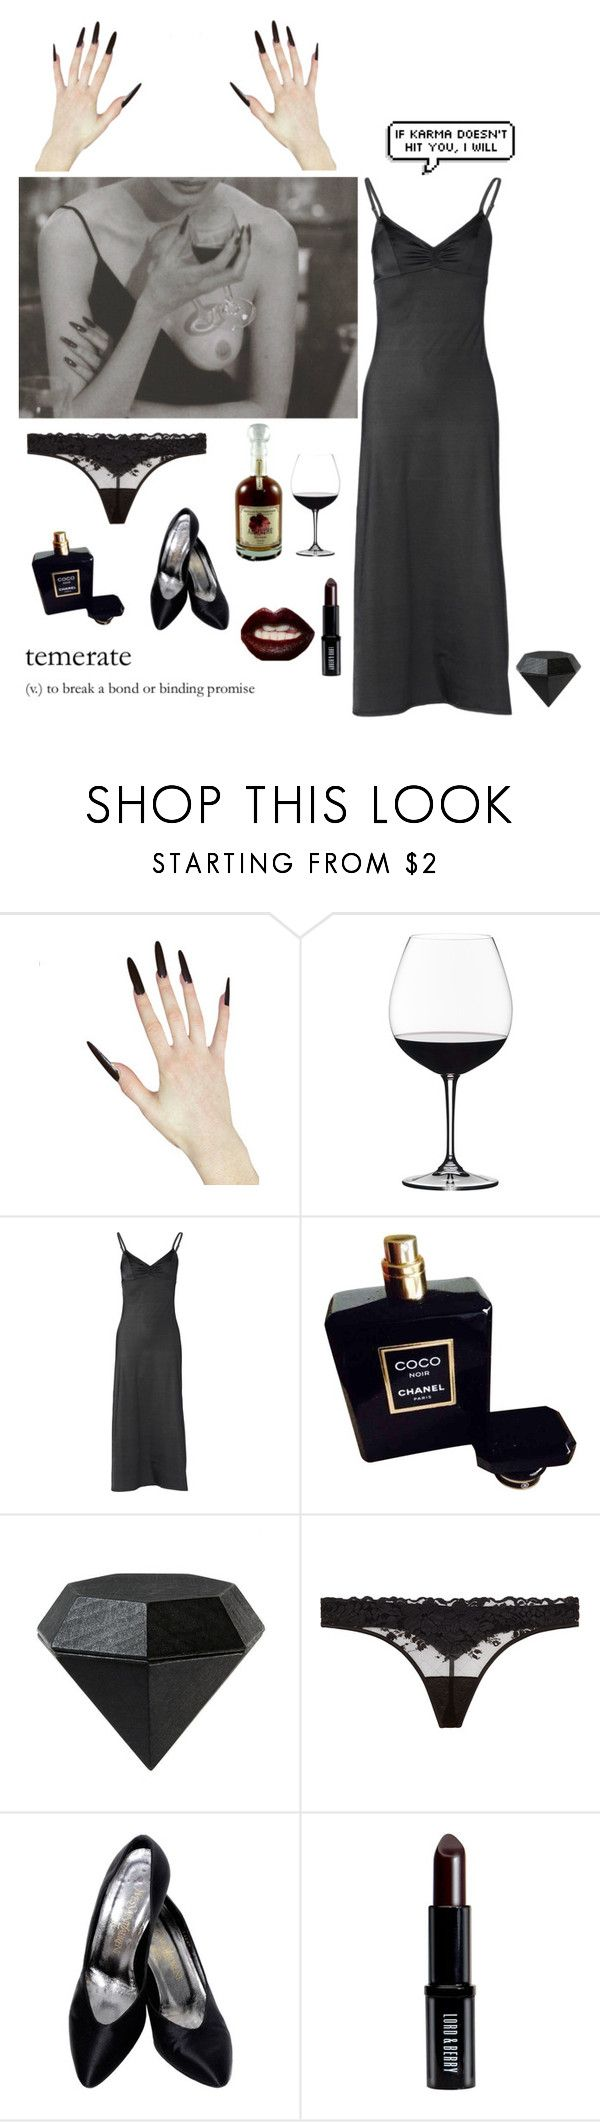 """Careful, Cats have claws"" by missmoonchild ❤ liked on Polyvore featuring Riedel, Only Hearts, Chanel, Areaware, La Perla, TEM, Yves Saint Laurent, Lord & Berry and Manic Panic NYC"